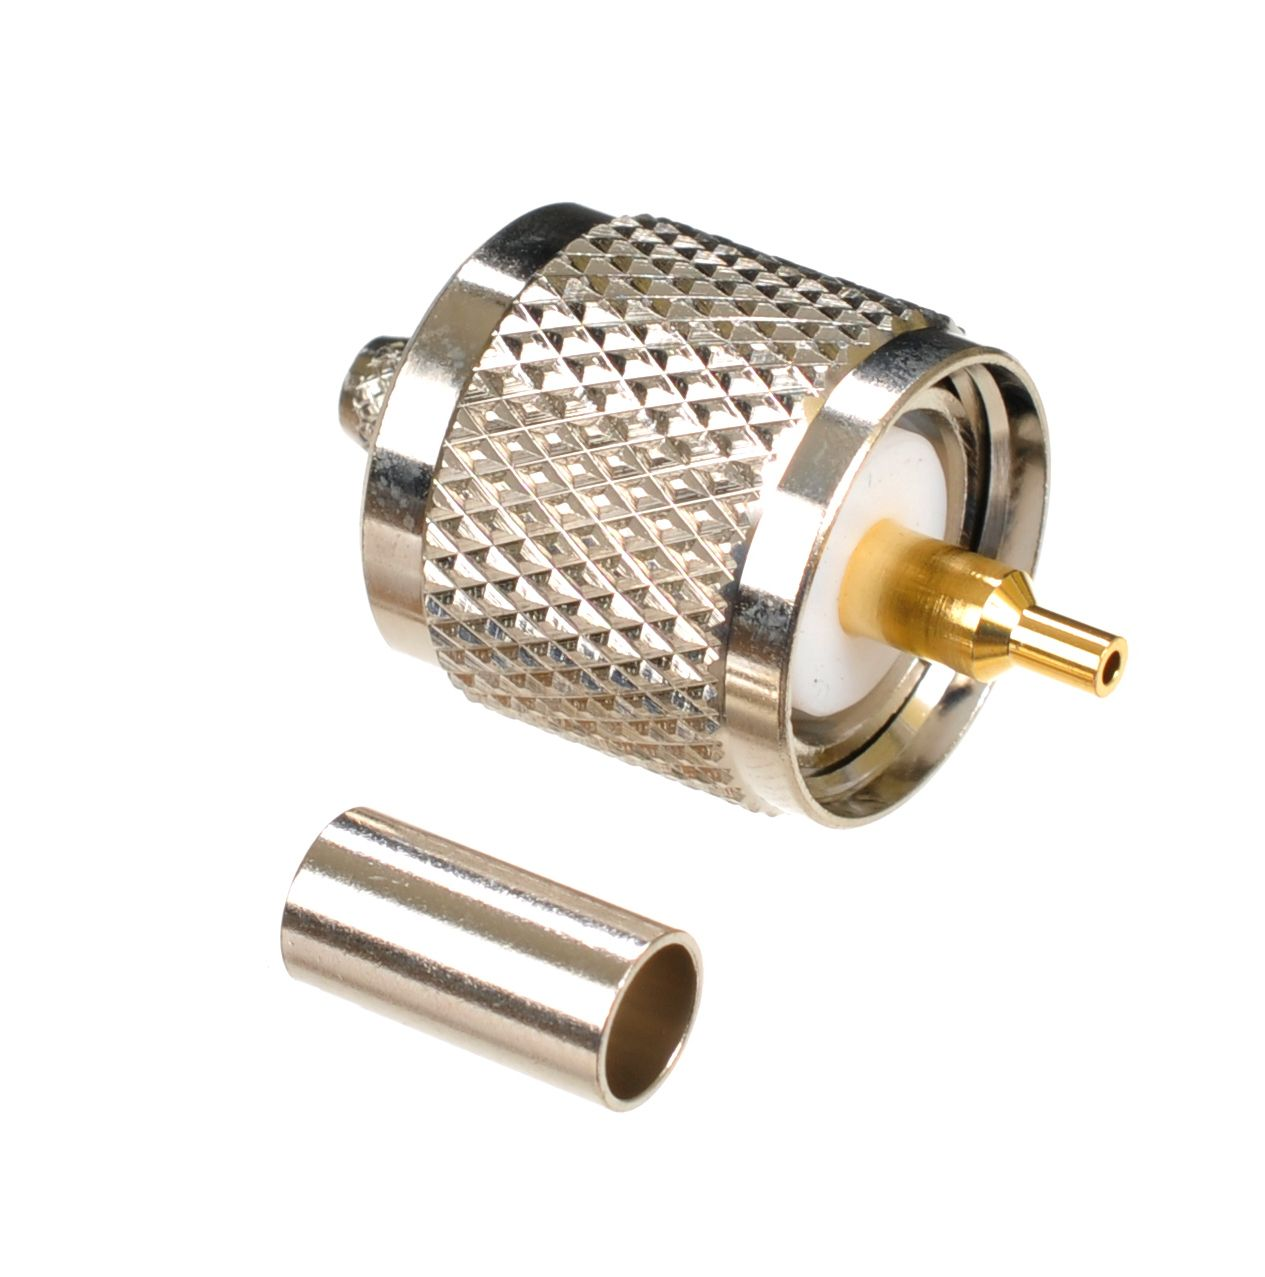 UHF plug-male or PL-259 connector for AIR802 CA195, Times Microwave LMR195, R58 and equivalent size cables.